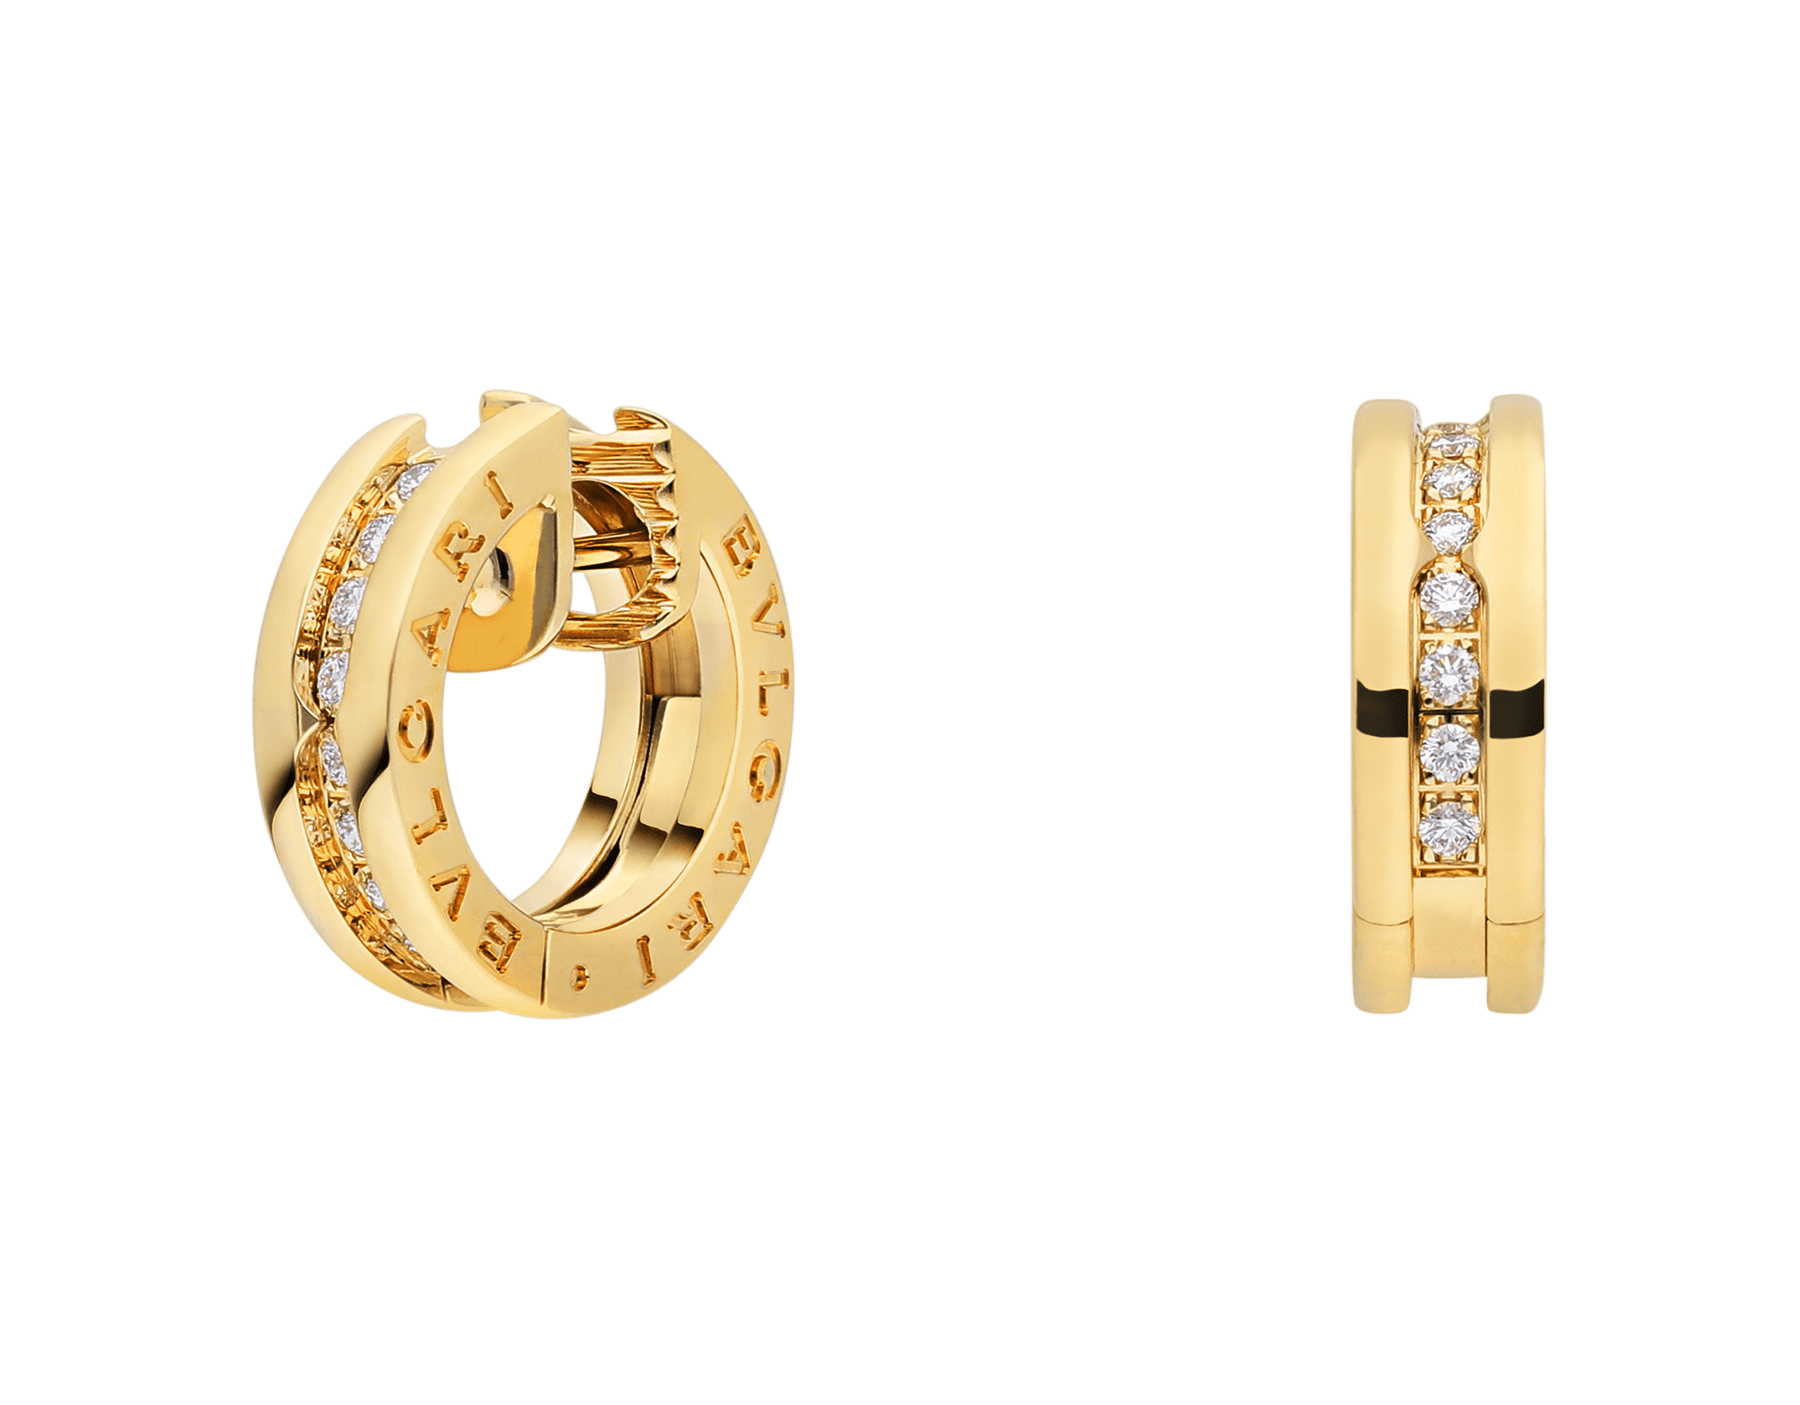 B.zero1 small hoop earrings in 18 kt yellow gold set with pavé diamonds on the spiral 357495 image 1